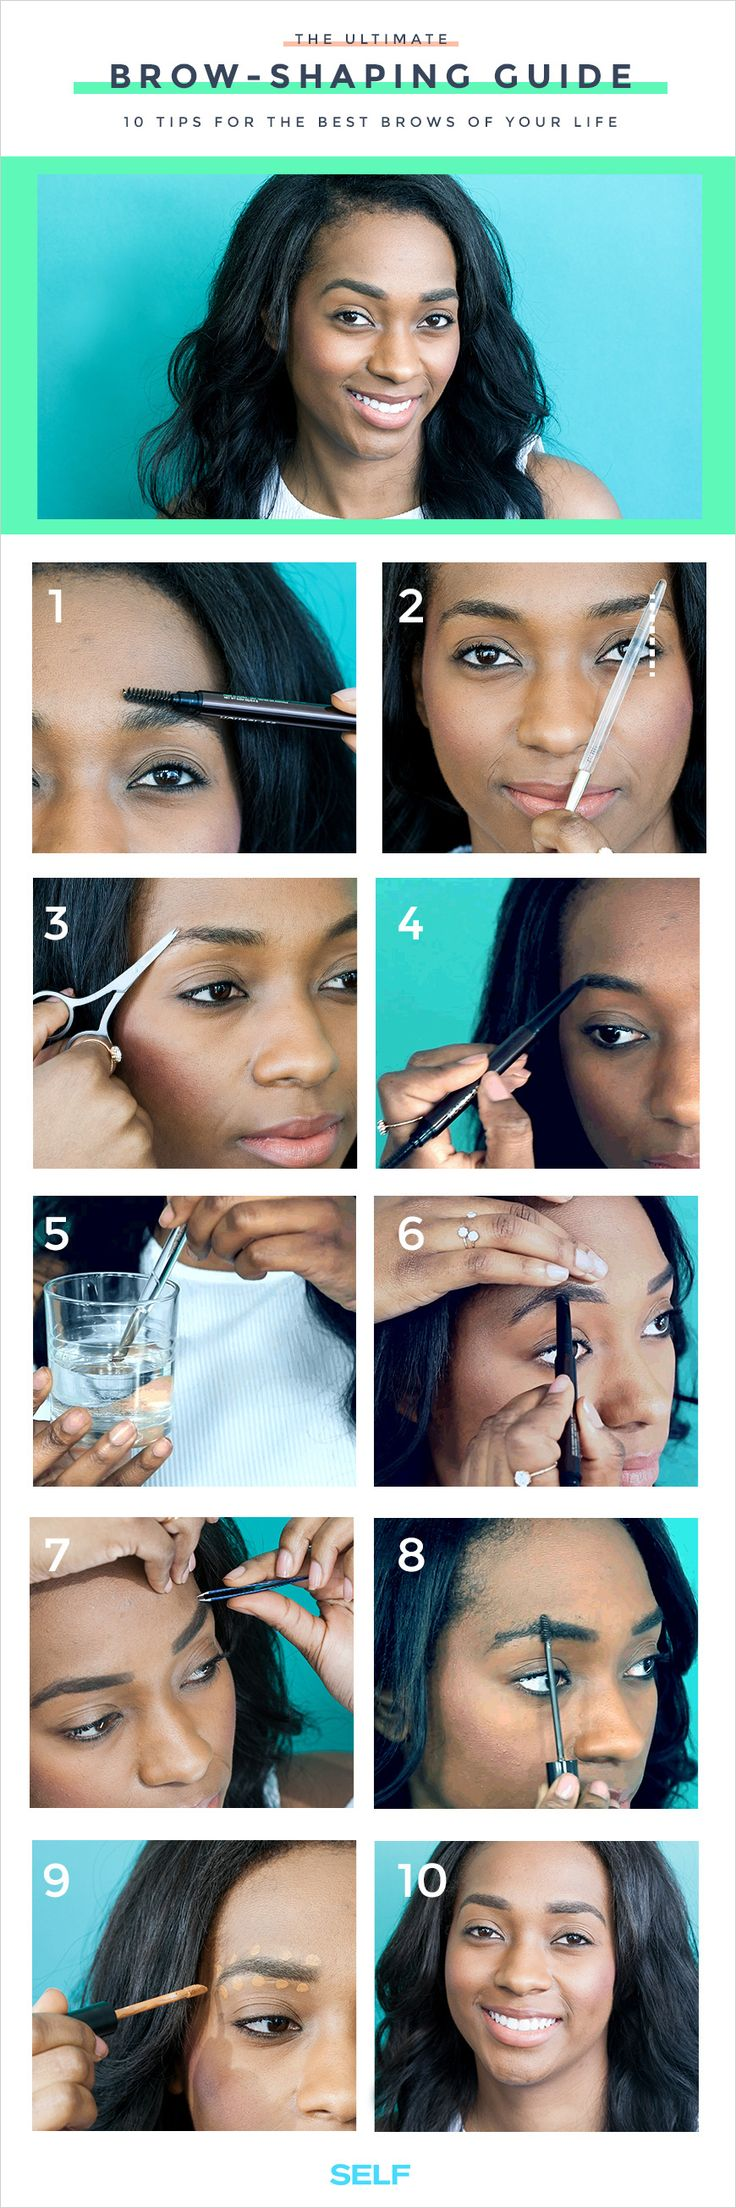 10 Tips For The Best Brows Of Your Life - SELF